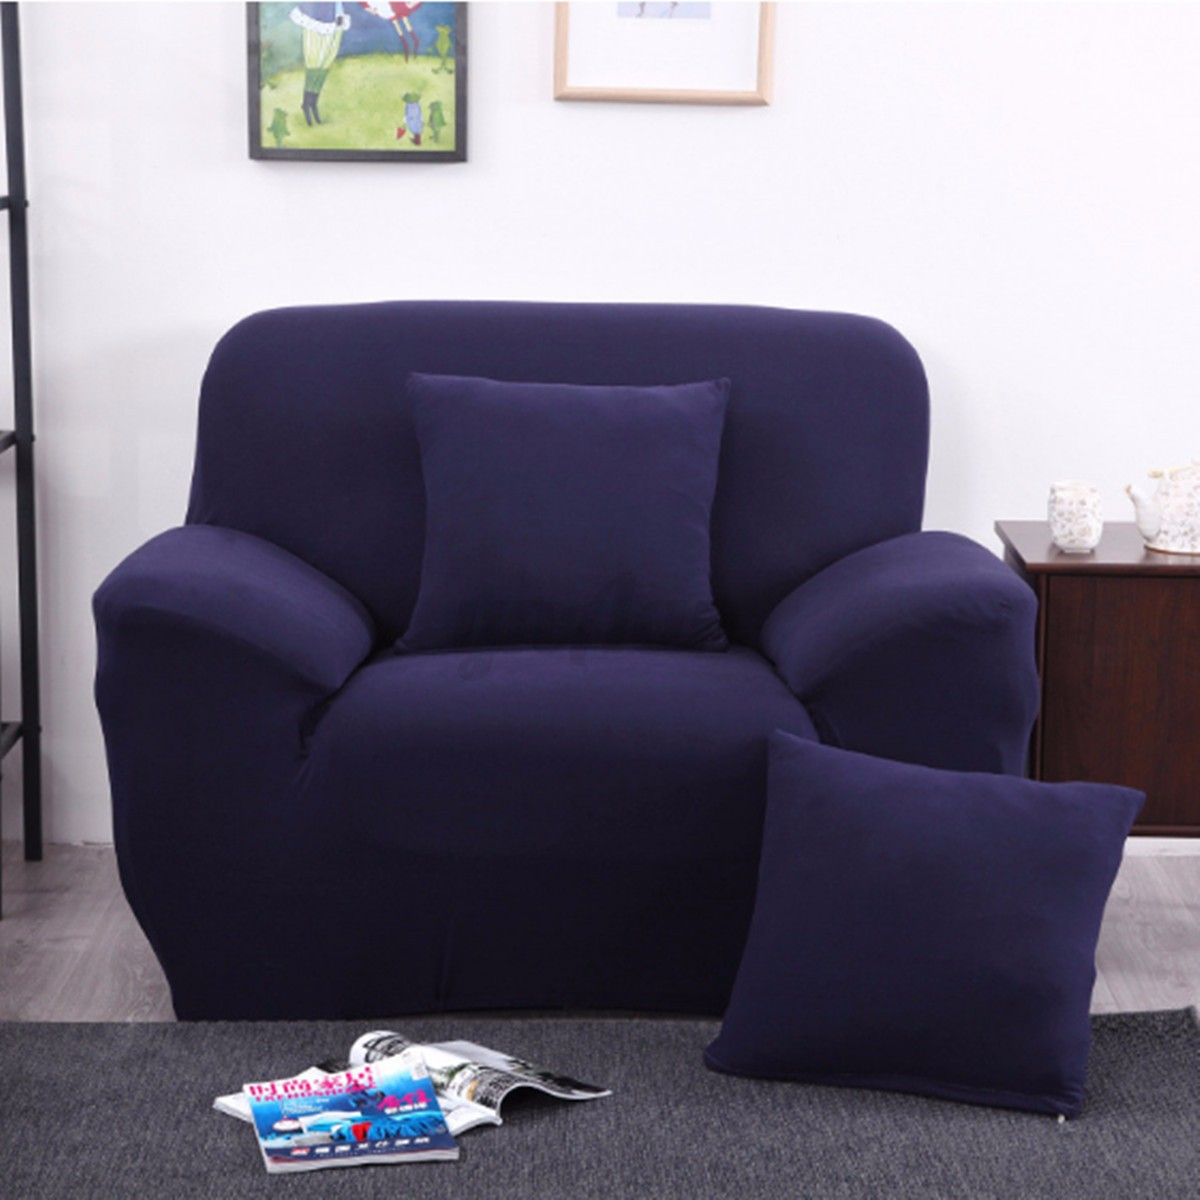 fitted chair covers ebay babies r us rocking uk 1 2 3 seater sofa cover pillow case easy fit stretch